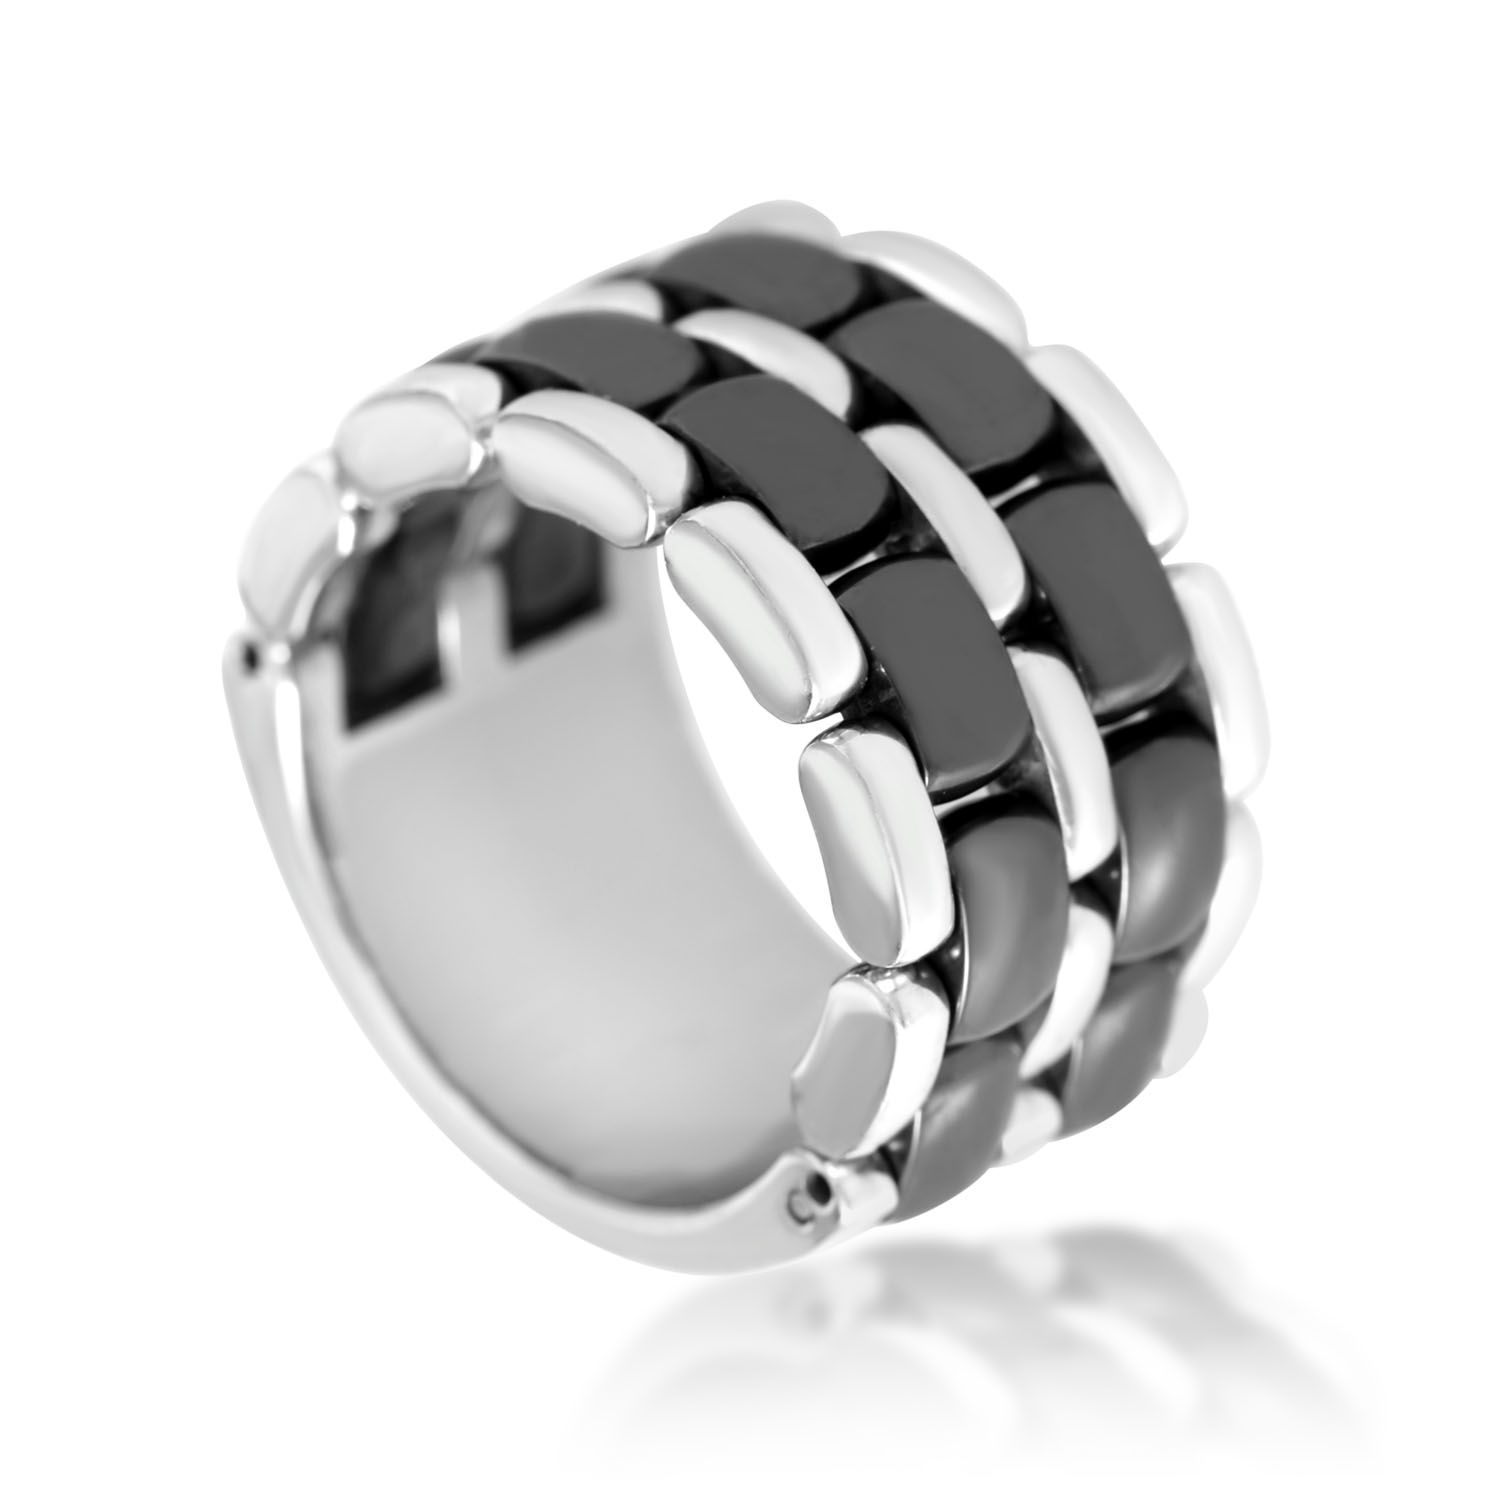 Chanel Ultra 18K White Gold Hematite Band Ring